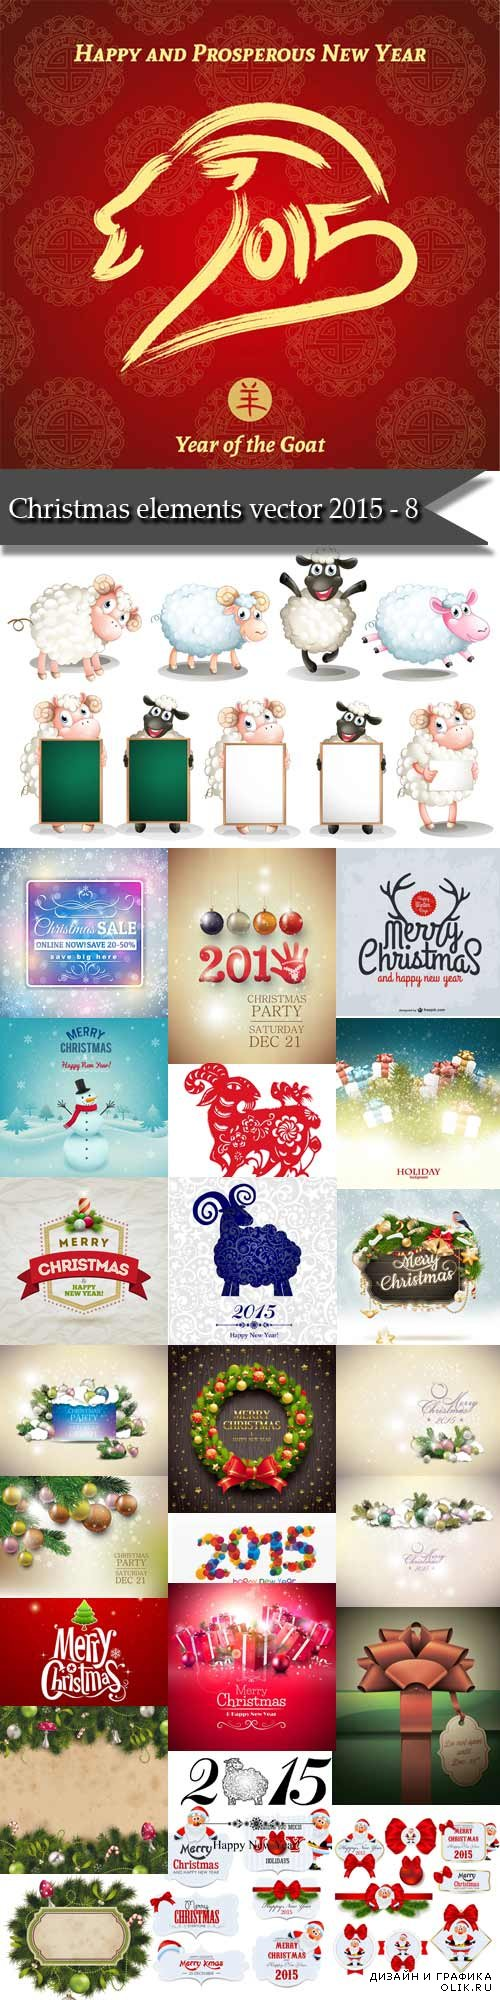 Christmas elements vector 2015 - 8